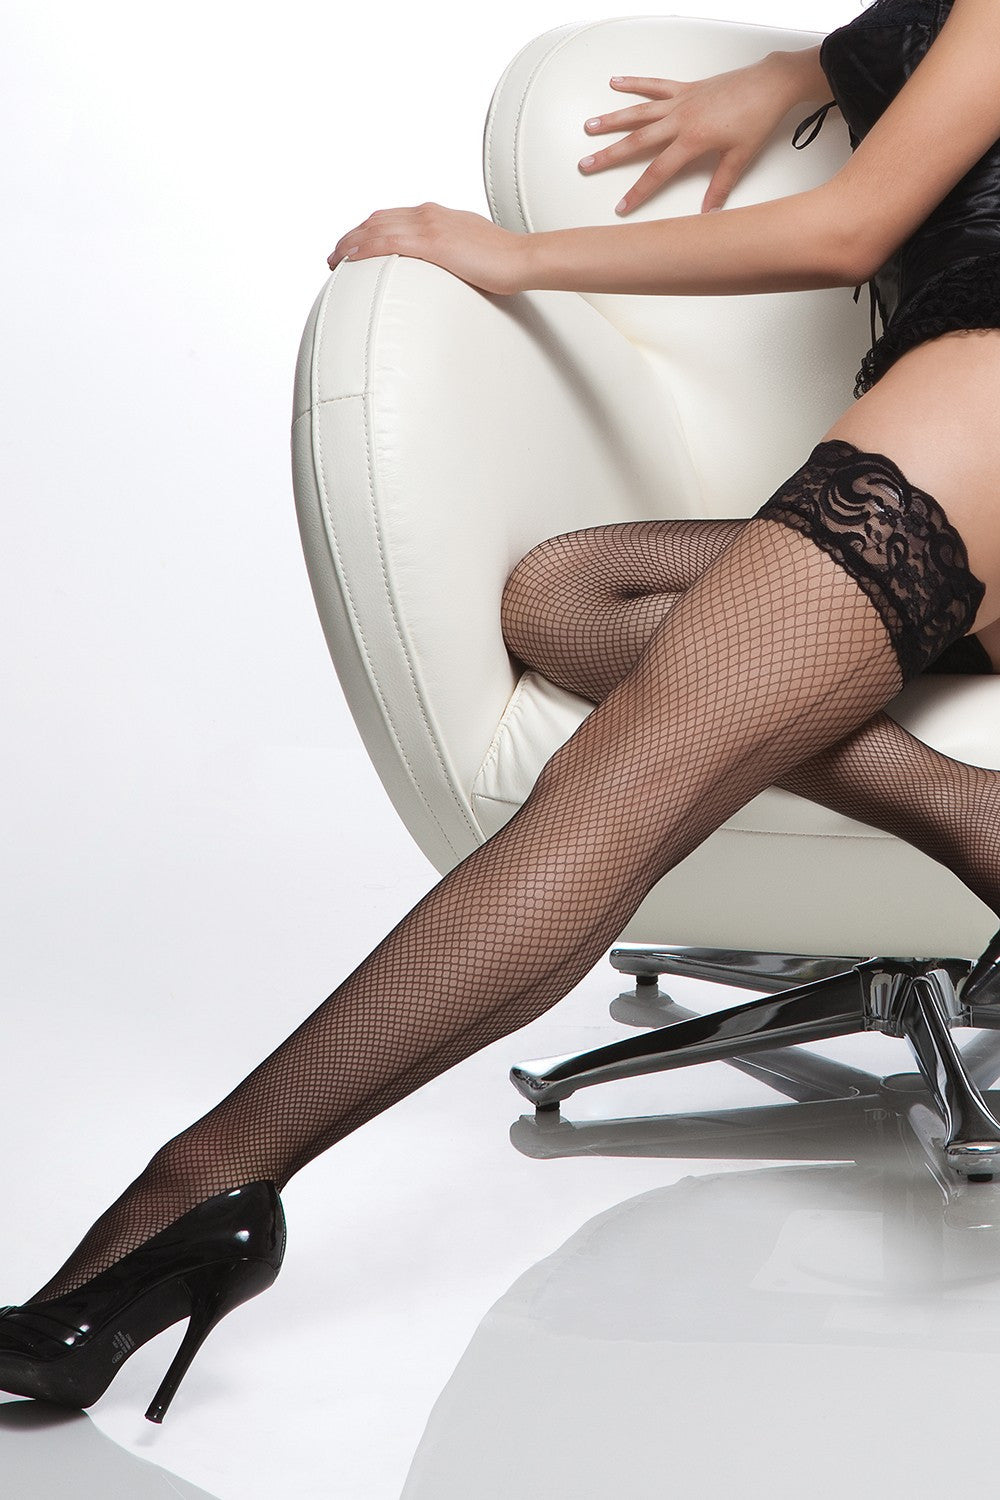 Lace Top Fishnet Stocking with Back Seam (1764)